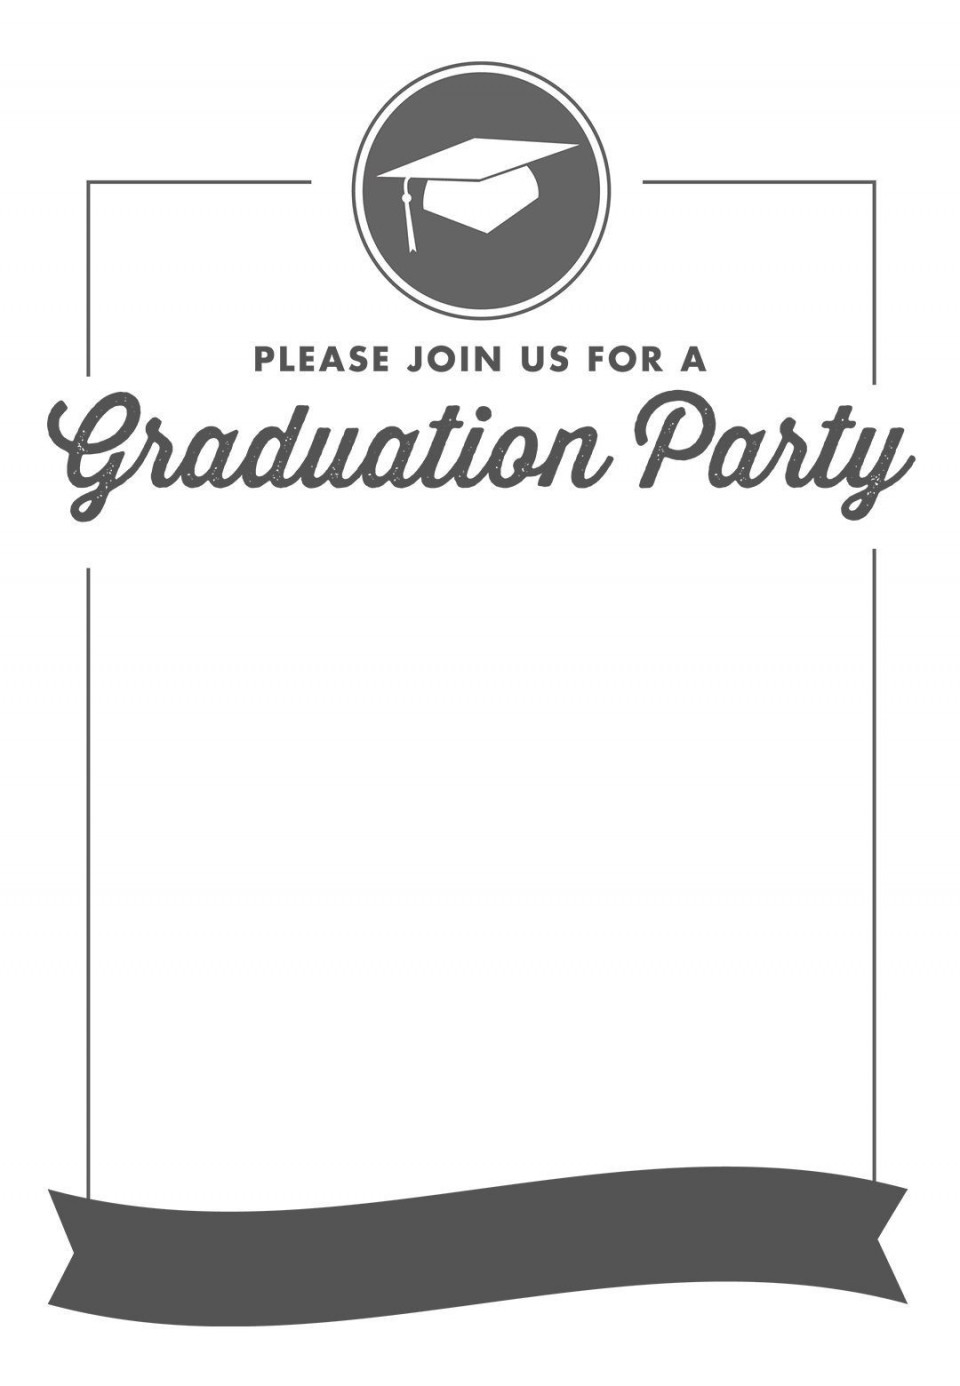 002 Unbelievable Free Graduation Invitation Template Printable High Resolution  Party For Word Preschool960